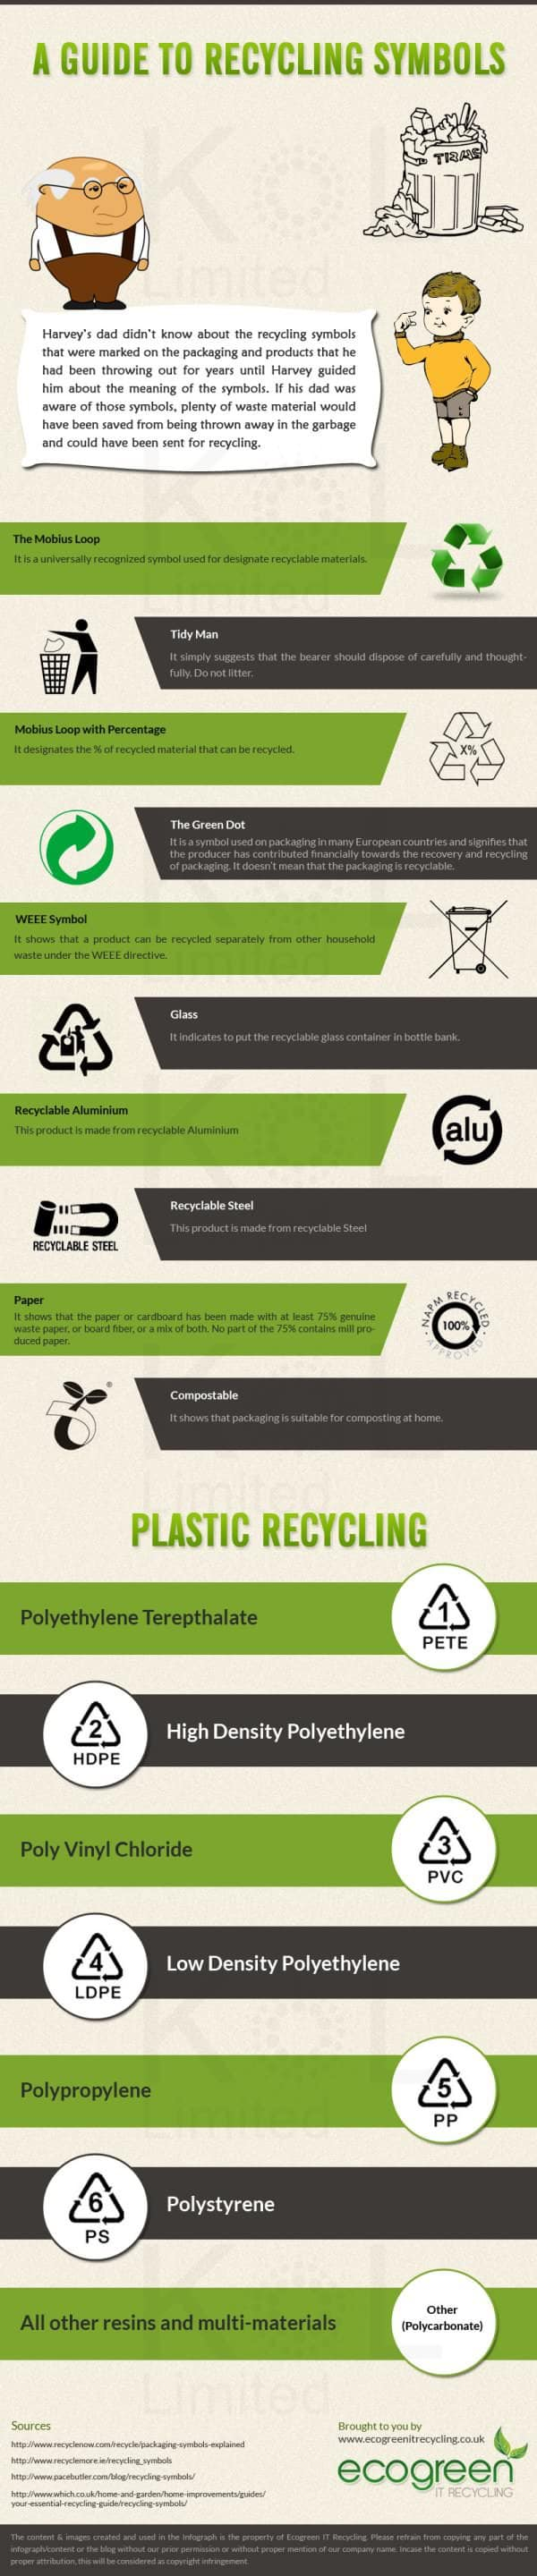 A Guide to Recycling Symbols Do-It-Yourself Ideas